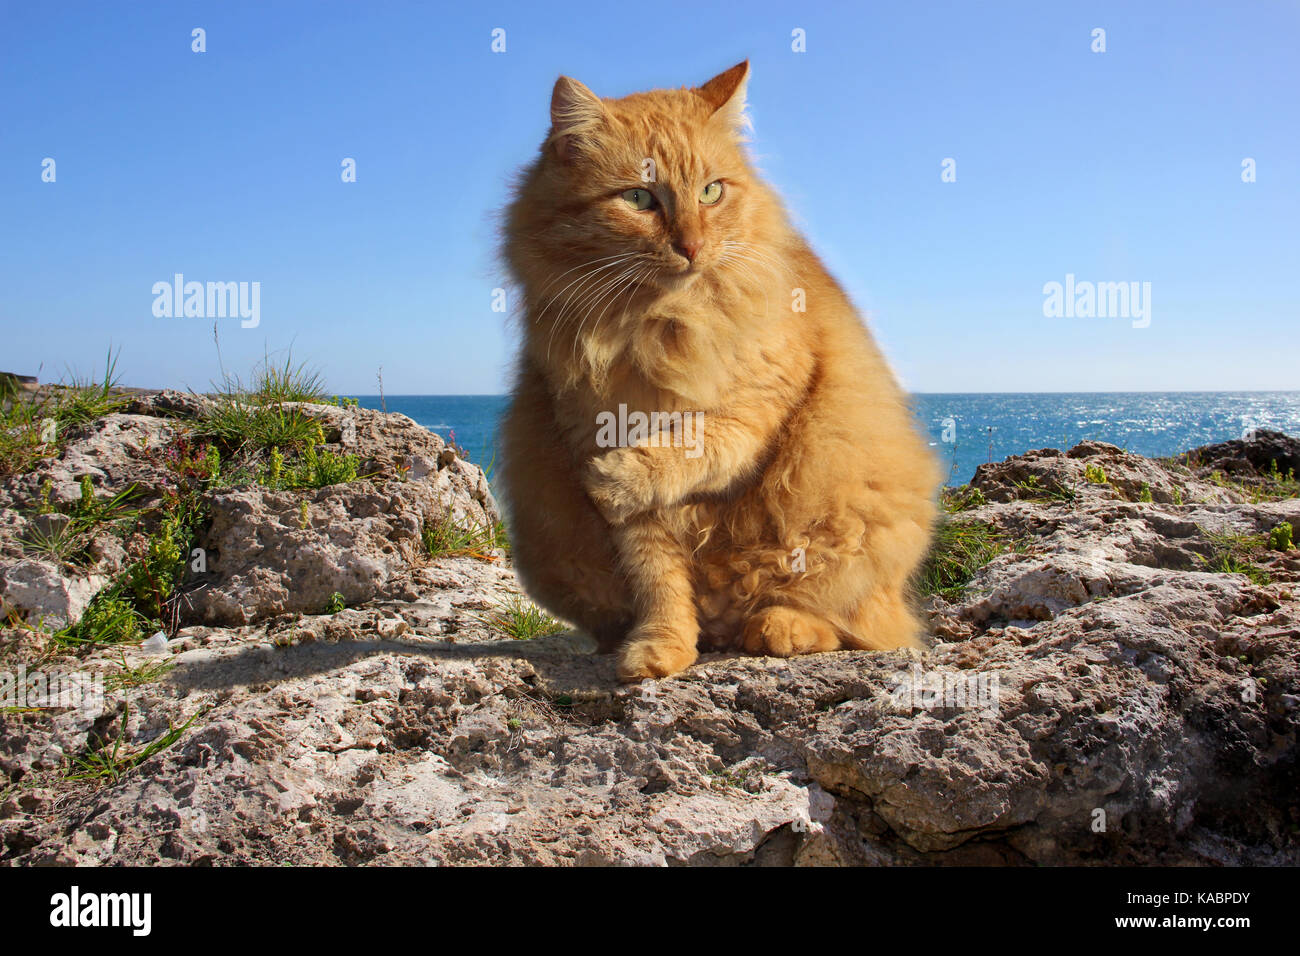 domestic cat, ginger, longhaired hybrid, sitting on a rock at the mediterranian sea Stock Photo